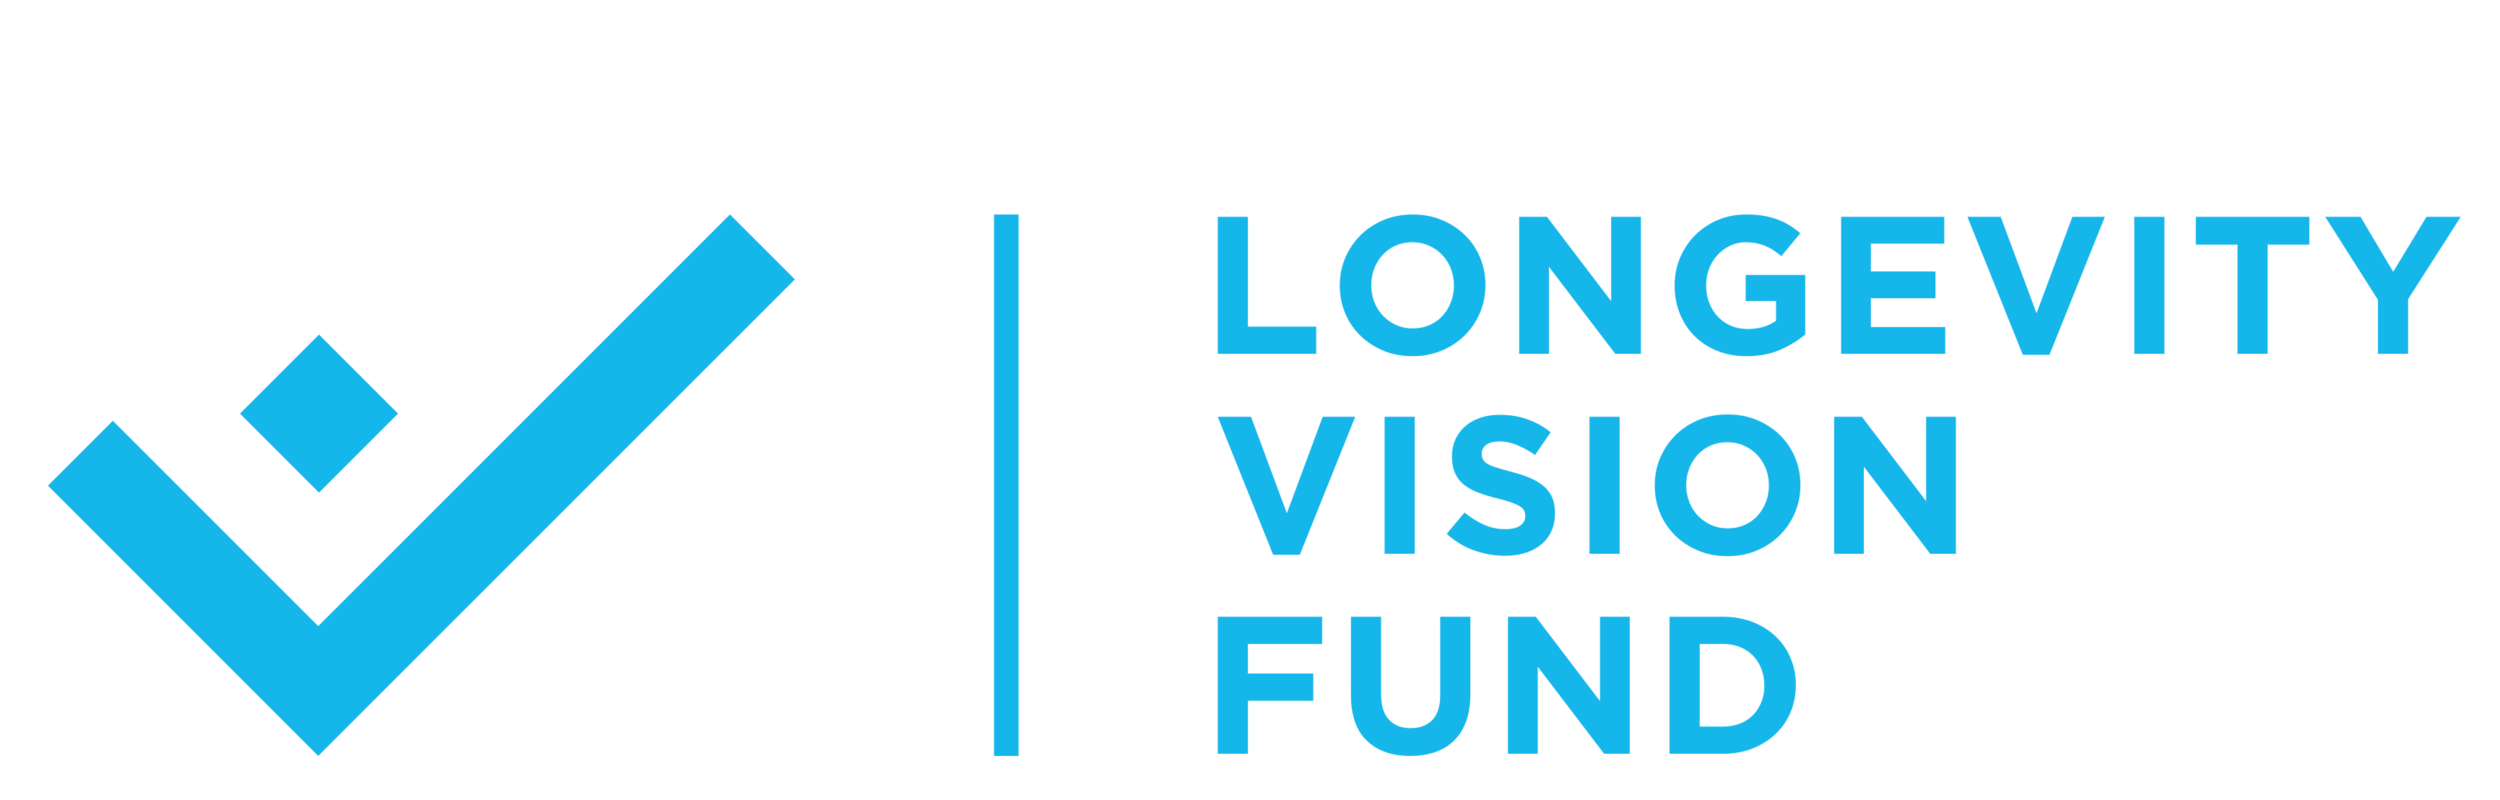 Longevity Vision Fund Logo